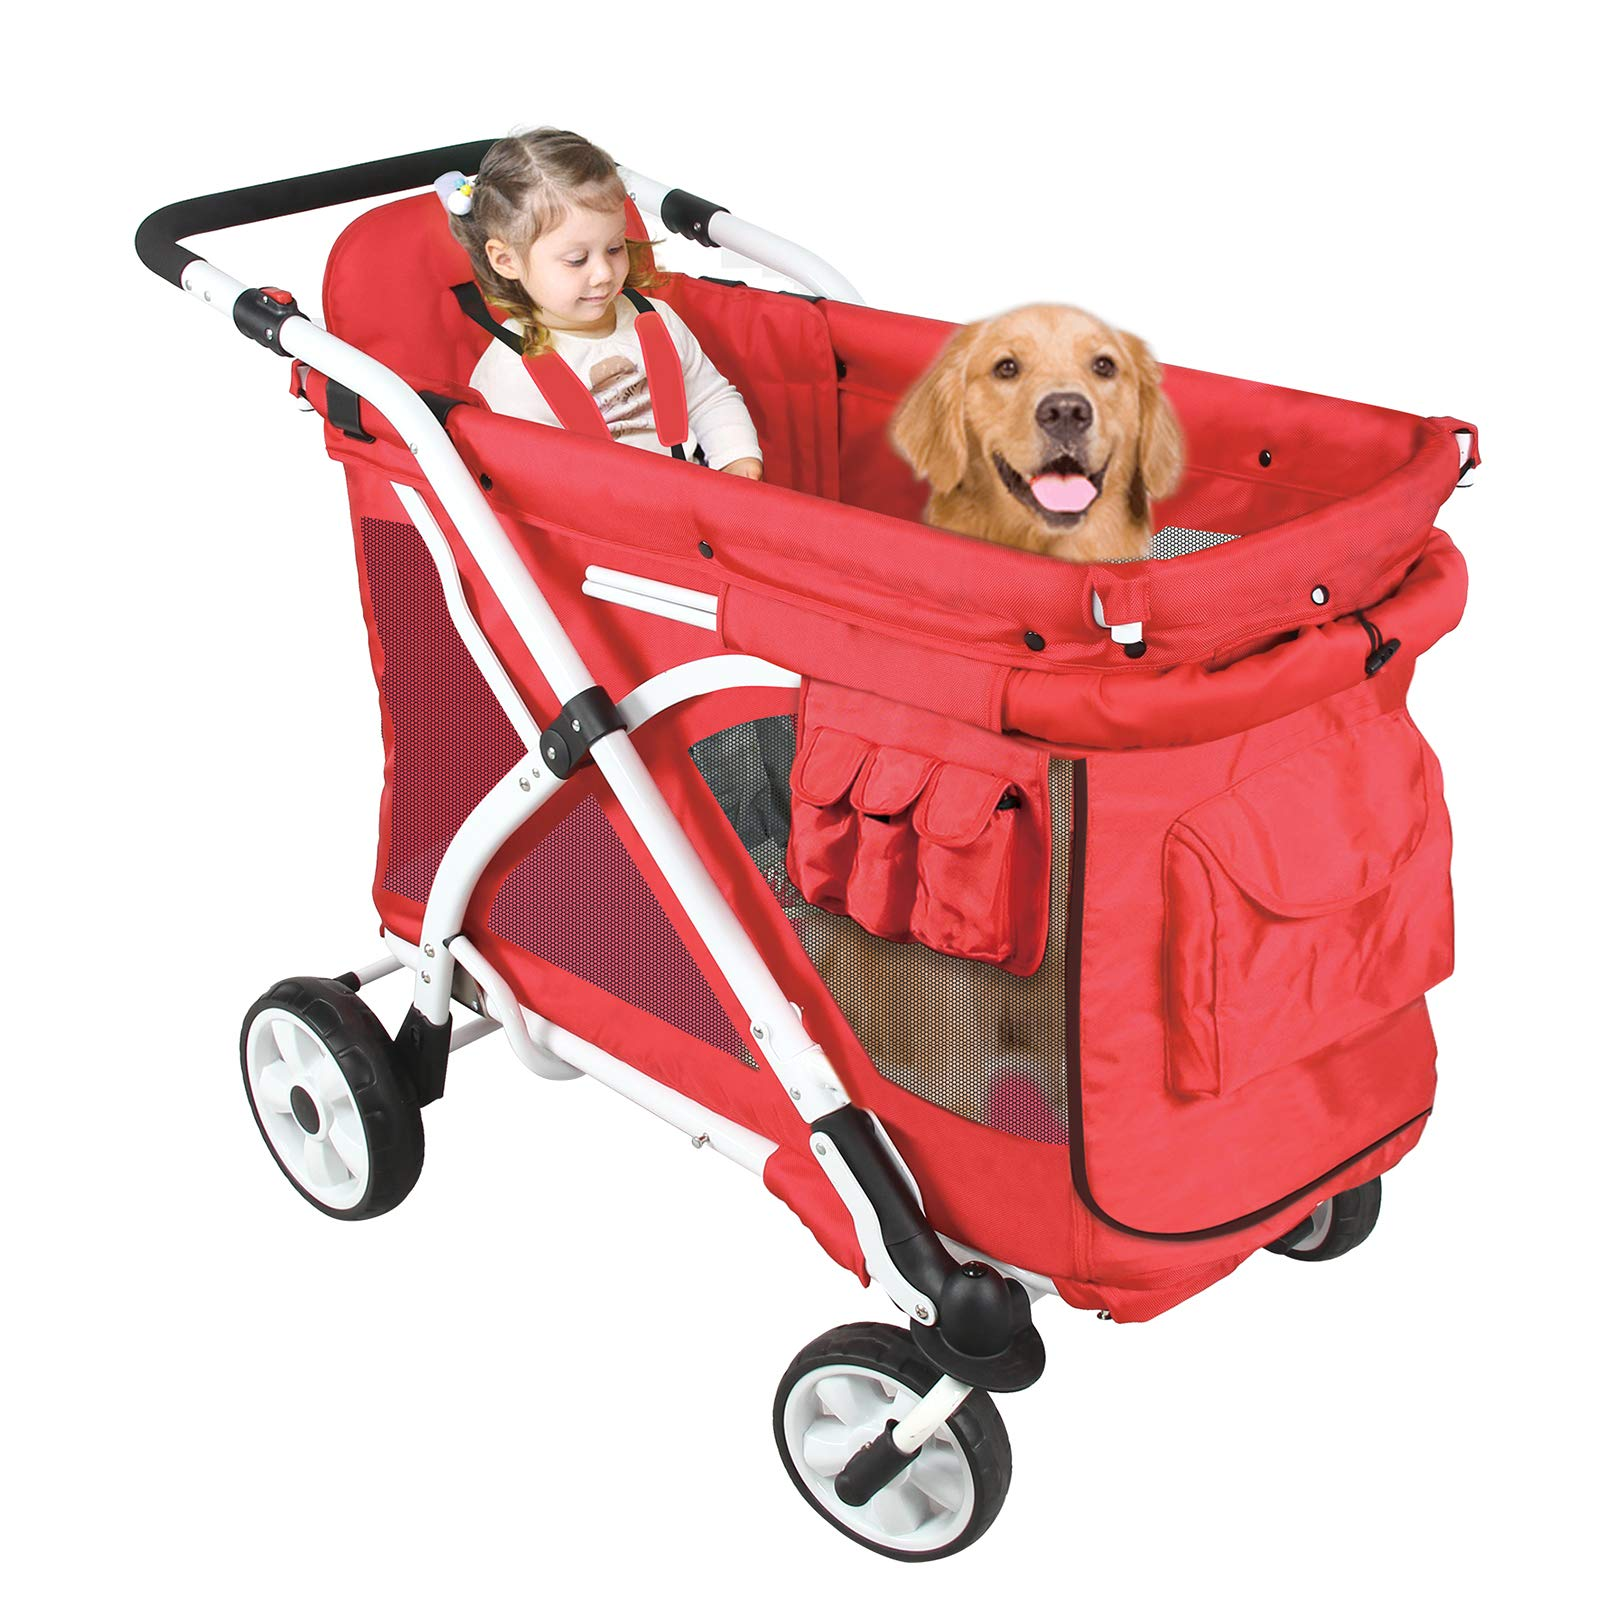 Familidoo Multi-Purpose 6 in 1 Large Twin Size Toddler Baby Folding Stroller Chariot Wagon, Red by FAMILIDOO (Image #4)